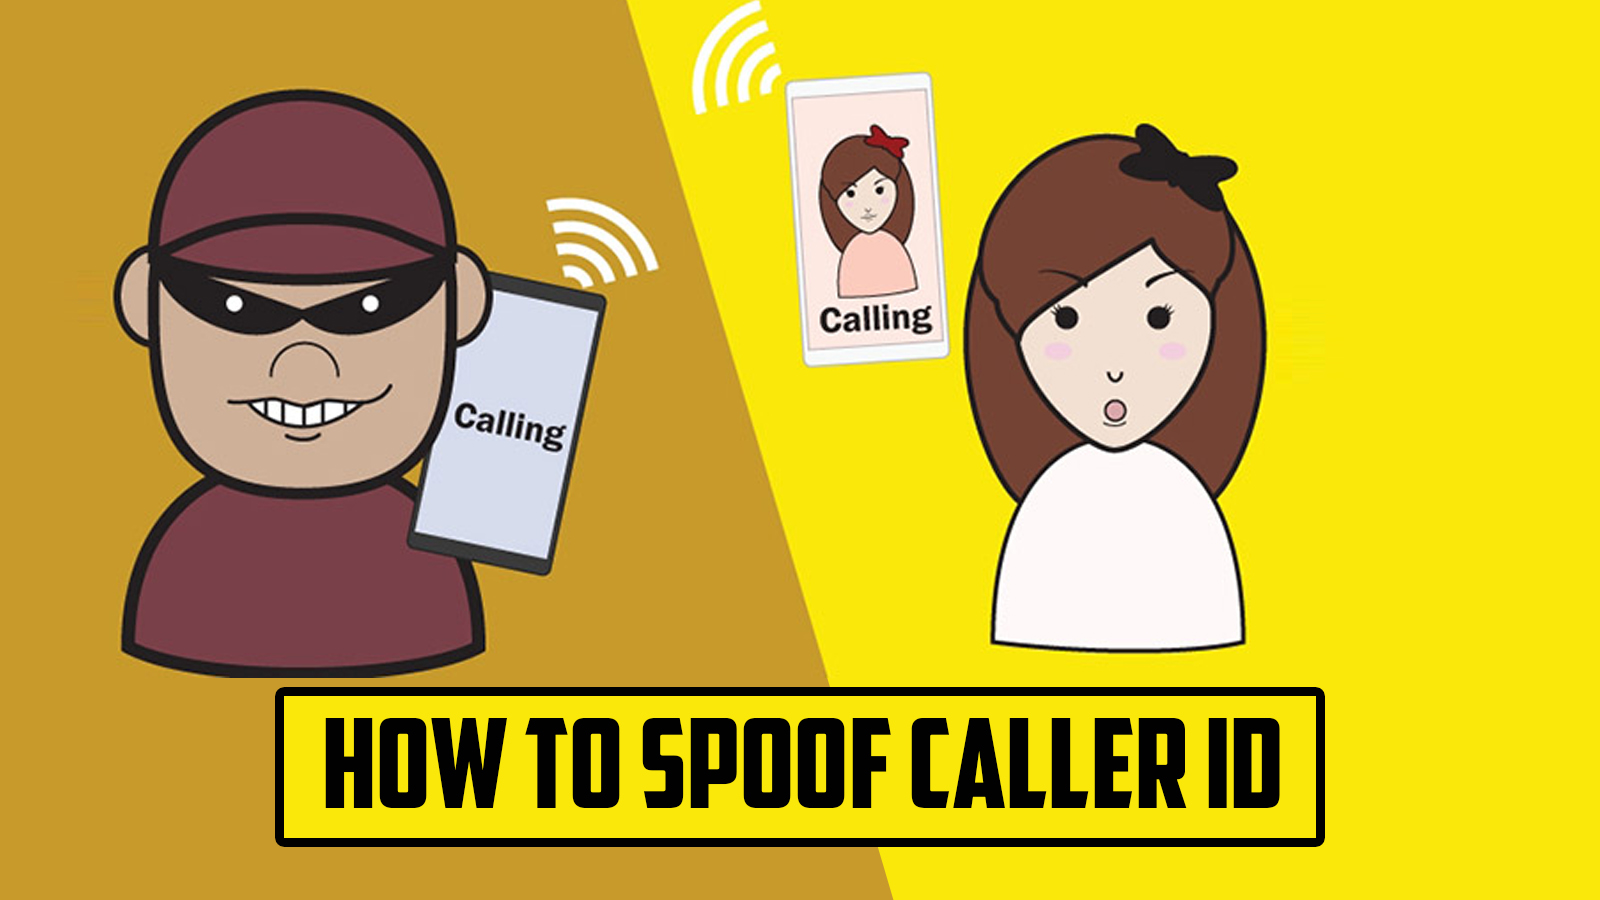 how to spoof caller ID.jpg